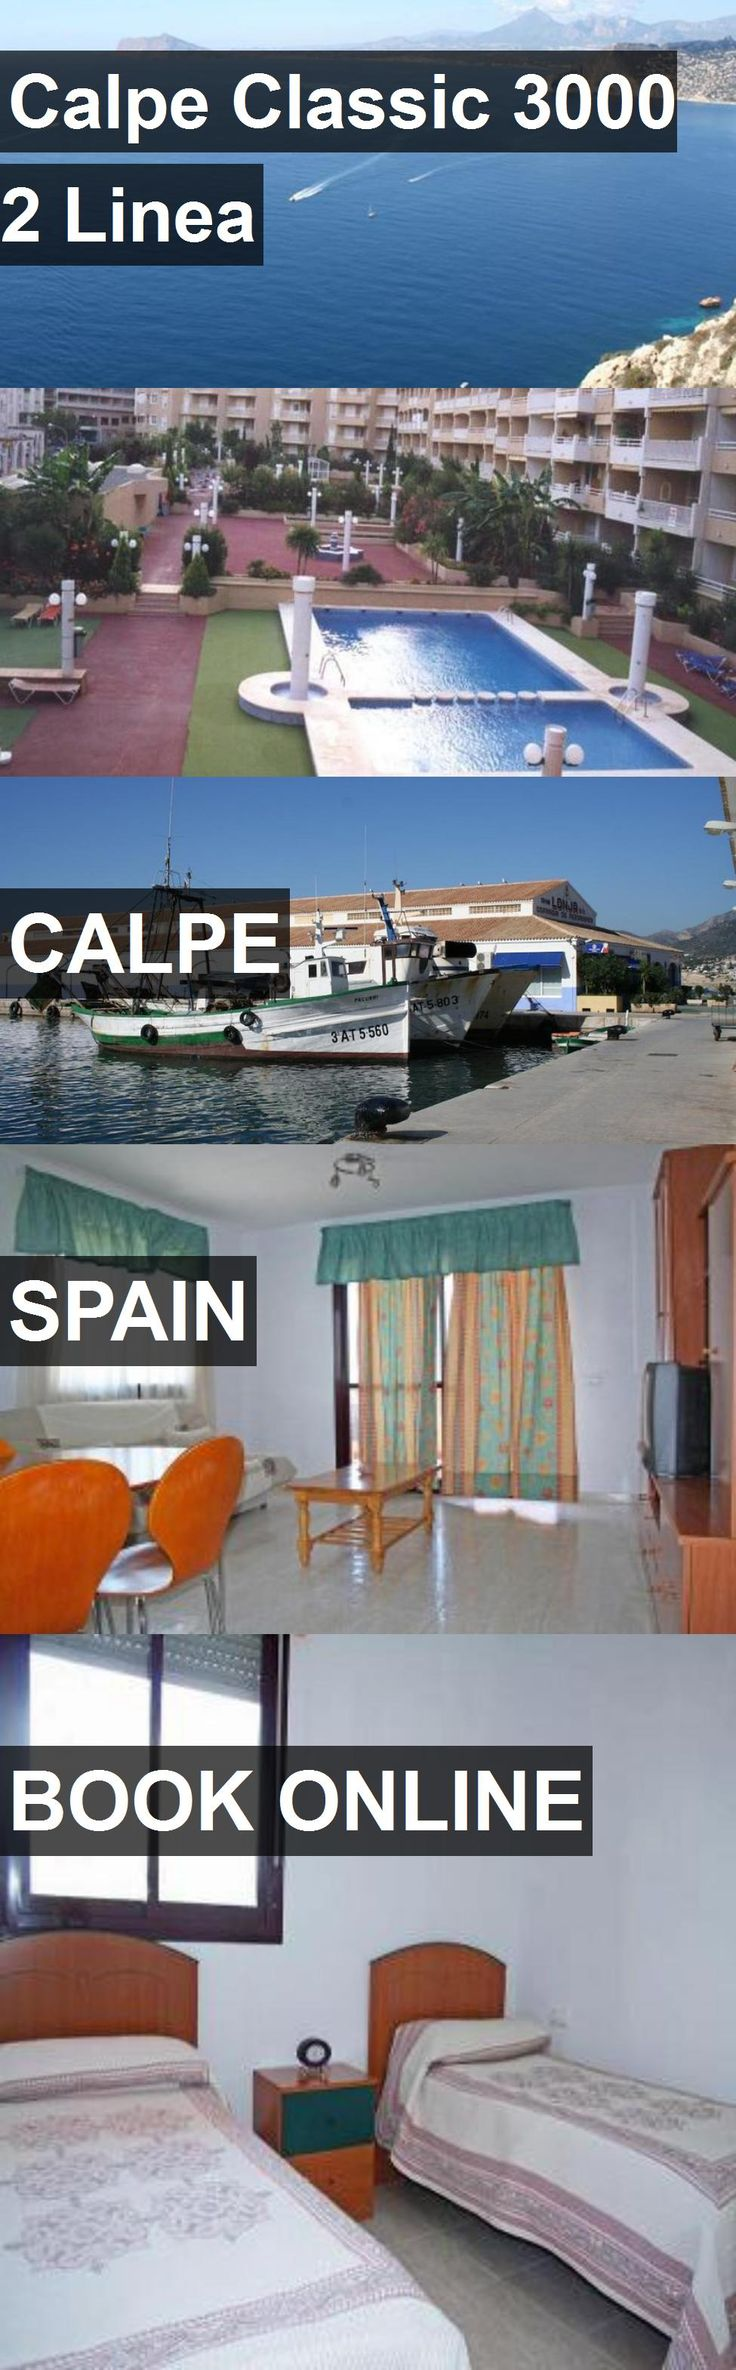 Hotel Calpe Classic 3000 2 Linea in Calpe, Spain. For more information, photos, reviews and best prices please follow the link. #Spain #Calpe #travel #vacation #hotel